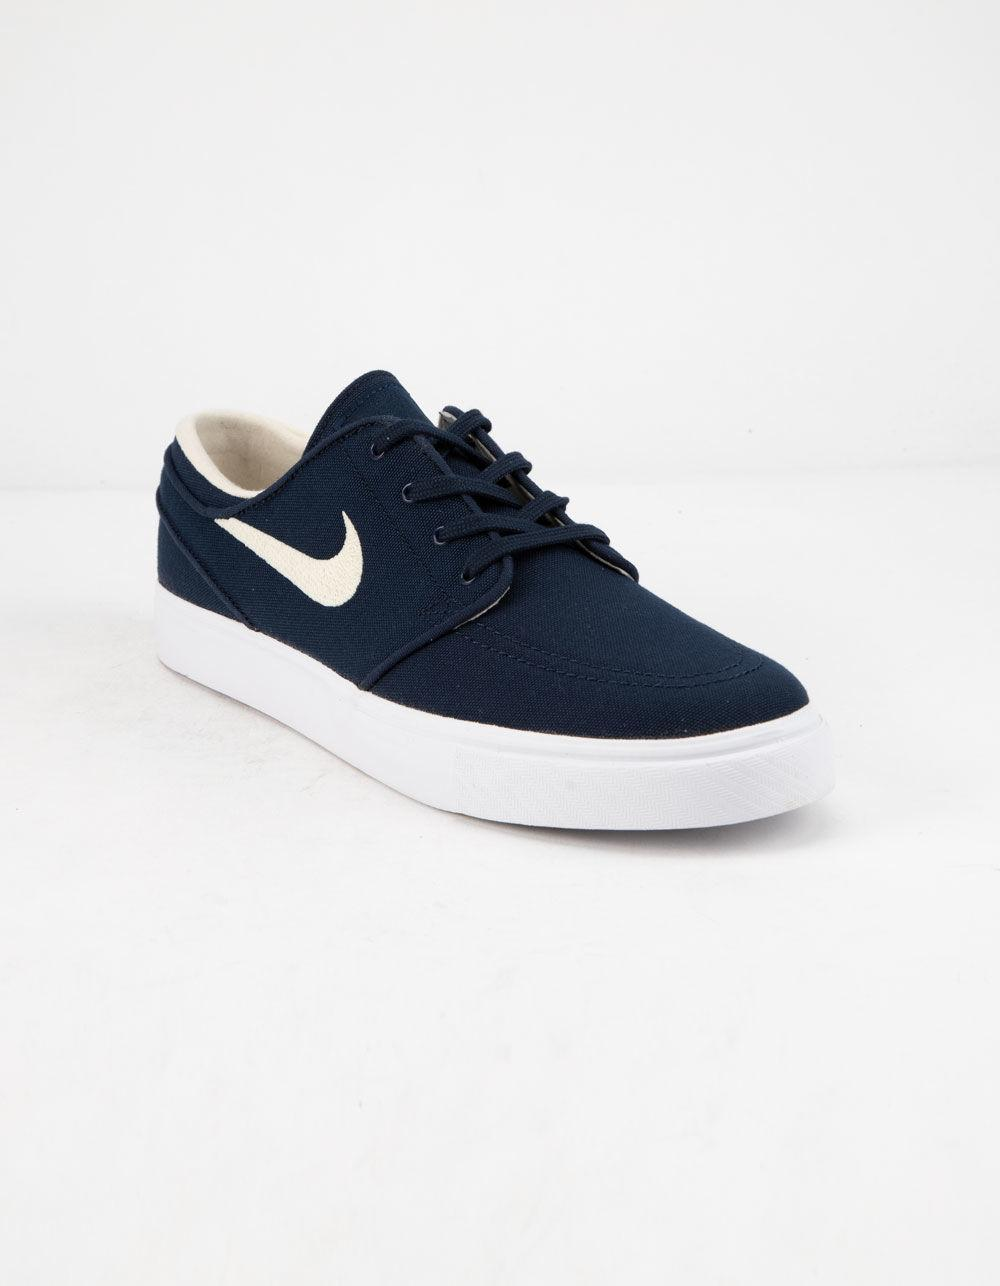 official photos e0245 8bc96 Lyst - Nike Zoom Stefan Janoski Canvas Obsidian   Light Cream Shoes in Blue  for Men